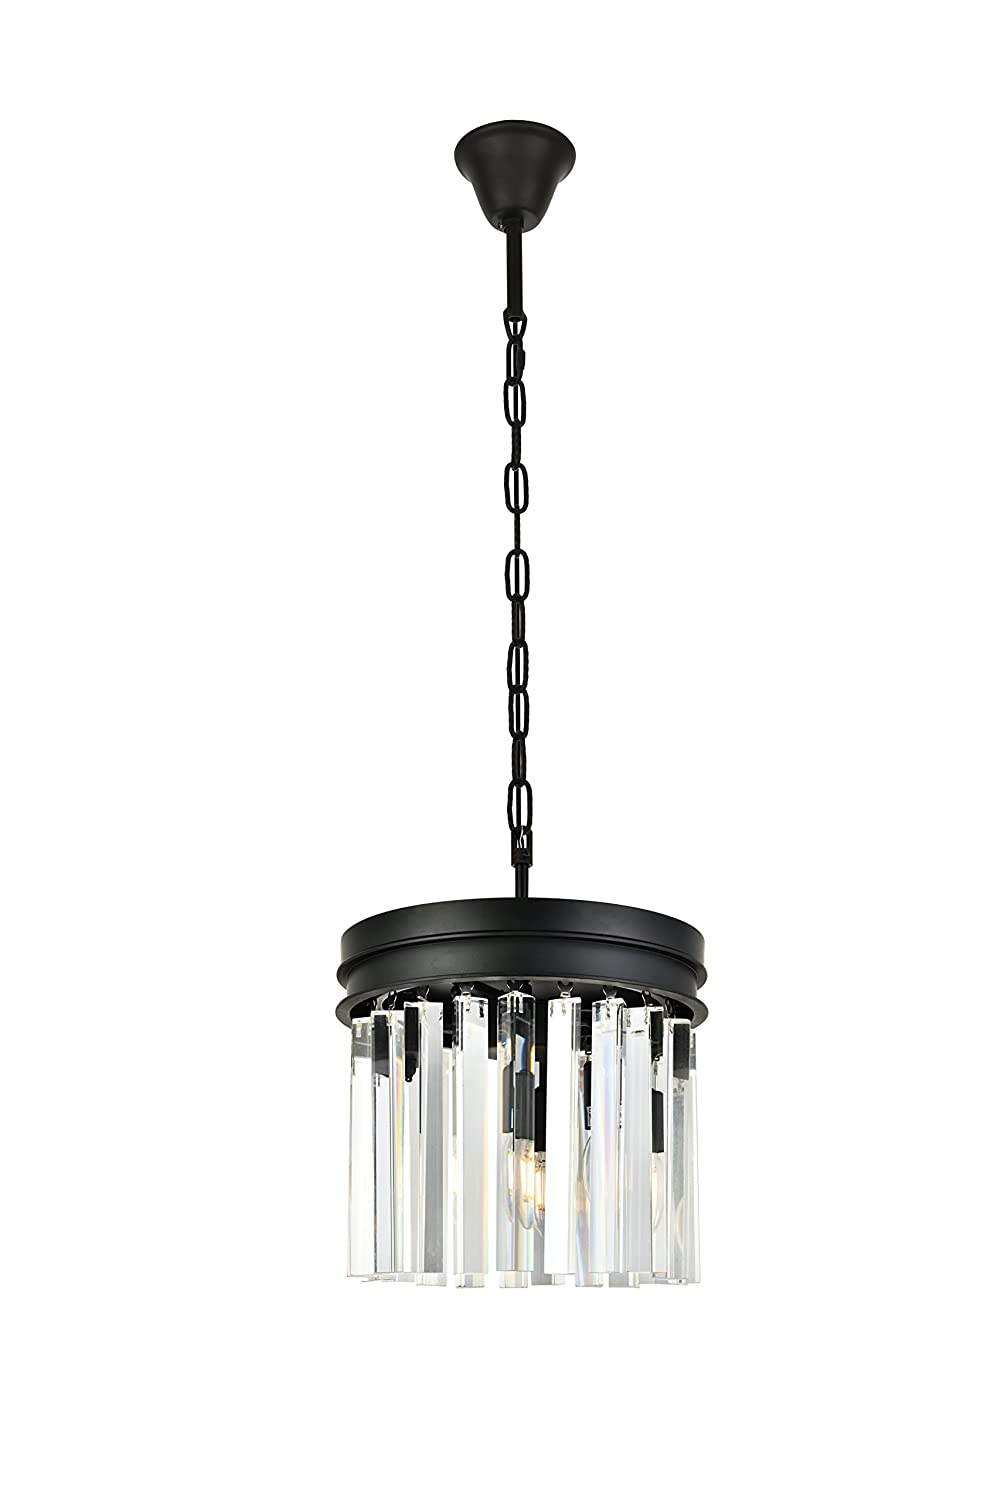 OmniLucent ARCD12PN-3714 Hyde Collection Pendant with 3 Lights and Clear Crystals 12 x 12 x 10 Polished Nickel Finish